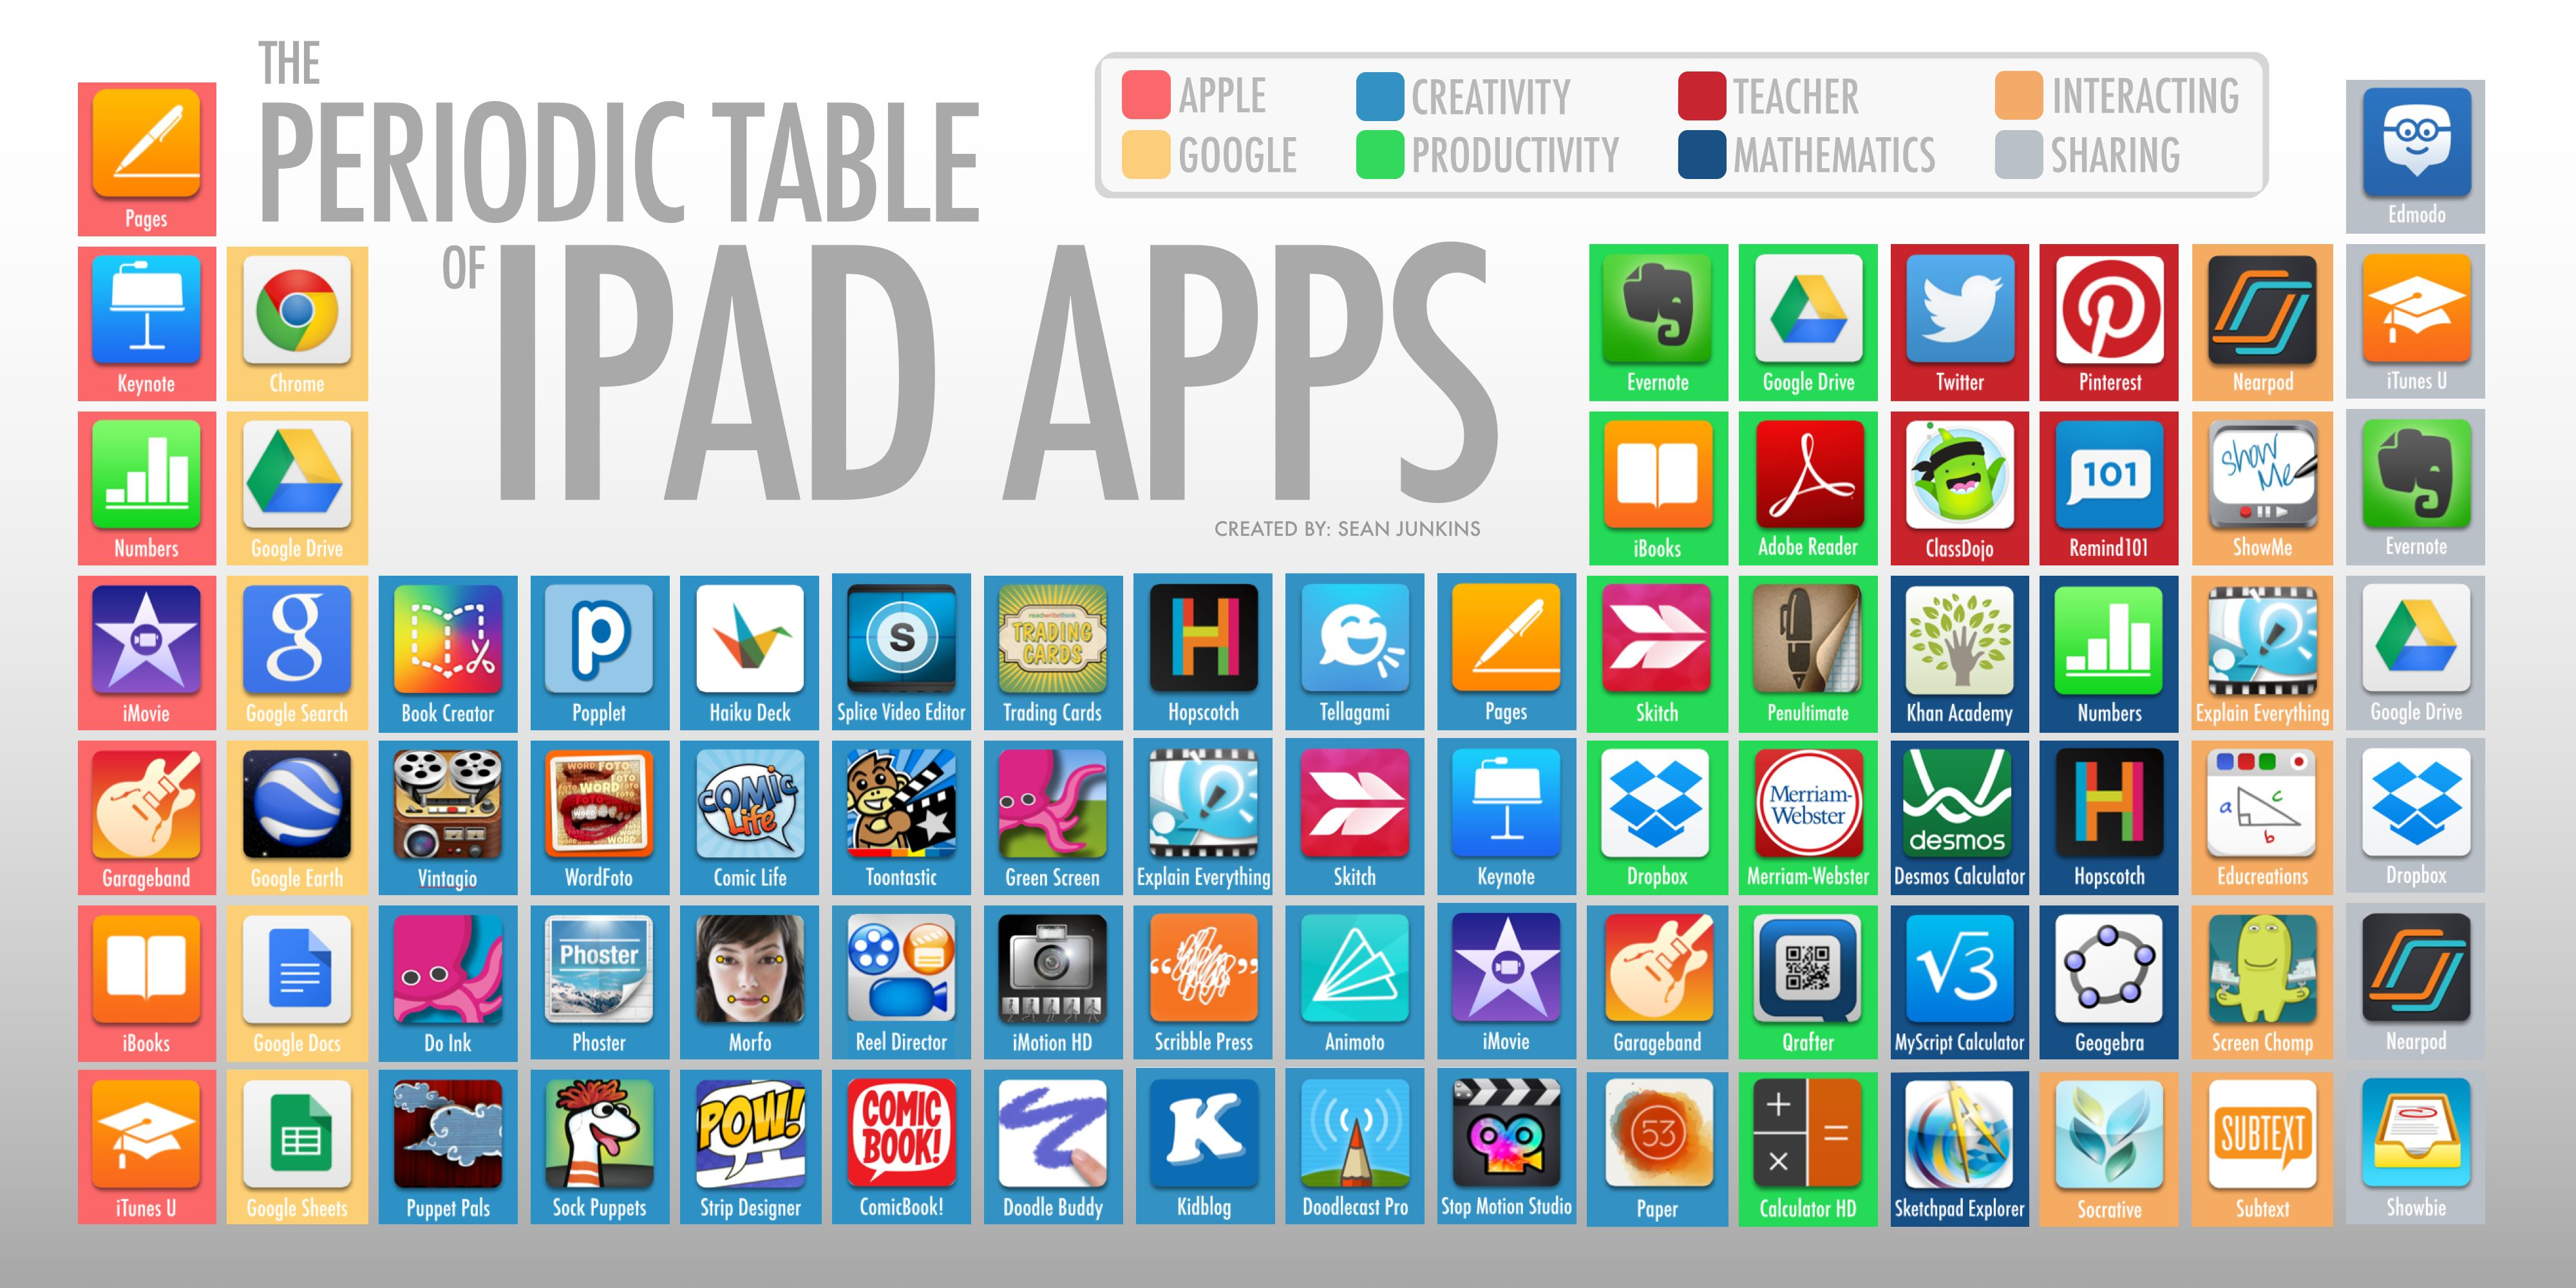 Periodic table ipad apps great organization of apps by apple periodic table ipad apps great organization of apps by apple google creativity productivity teacher mathematics interacting and sharing ve gamestrikefo Choice Image